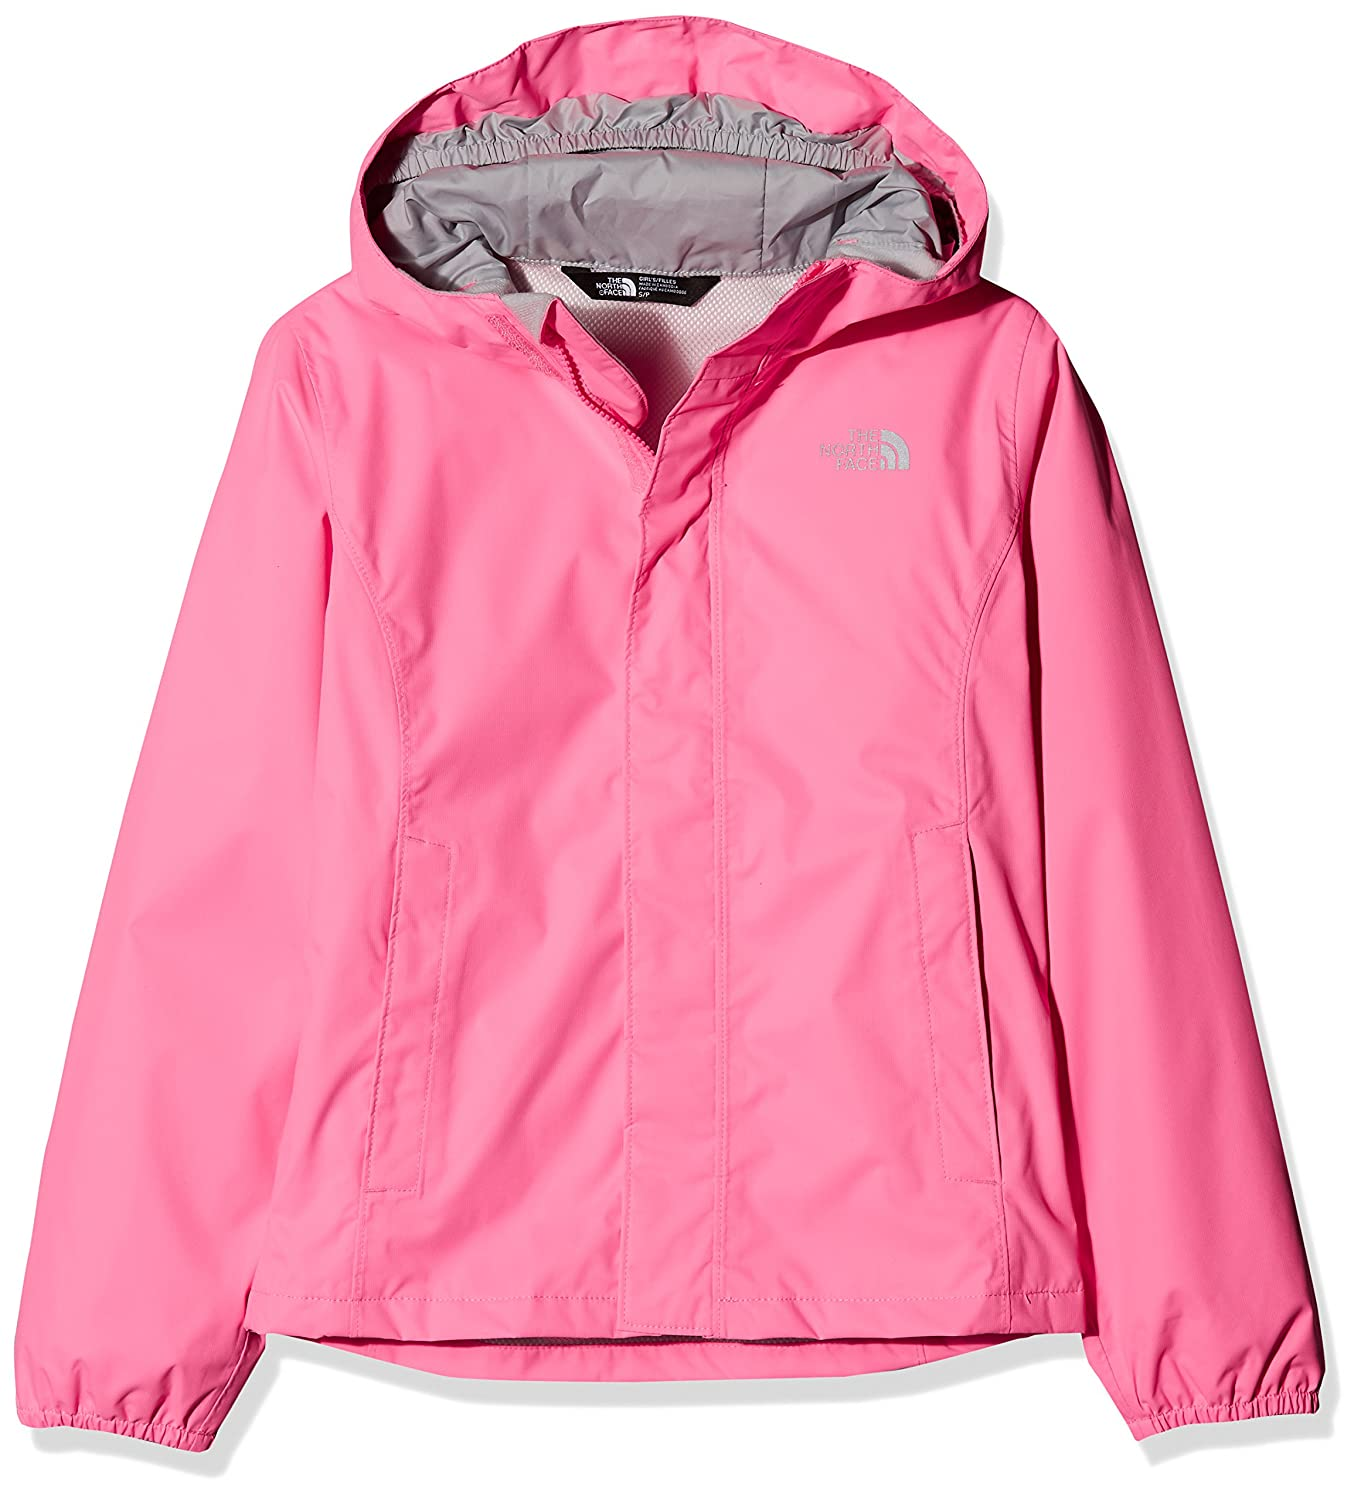 3fa1f2d56 THE NORTH FACE Girl's Resolve Reflective Jackets and Vests sport-girls  (Sportswear), Girls', T92U2LRR2.